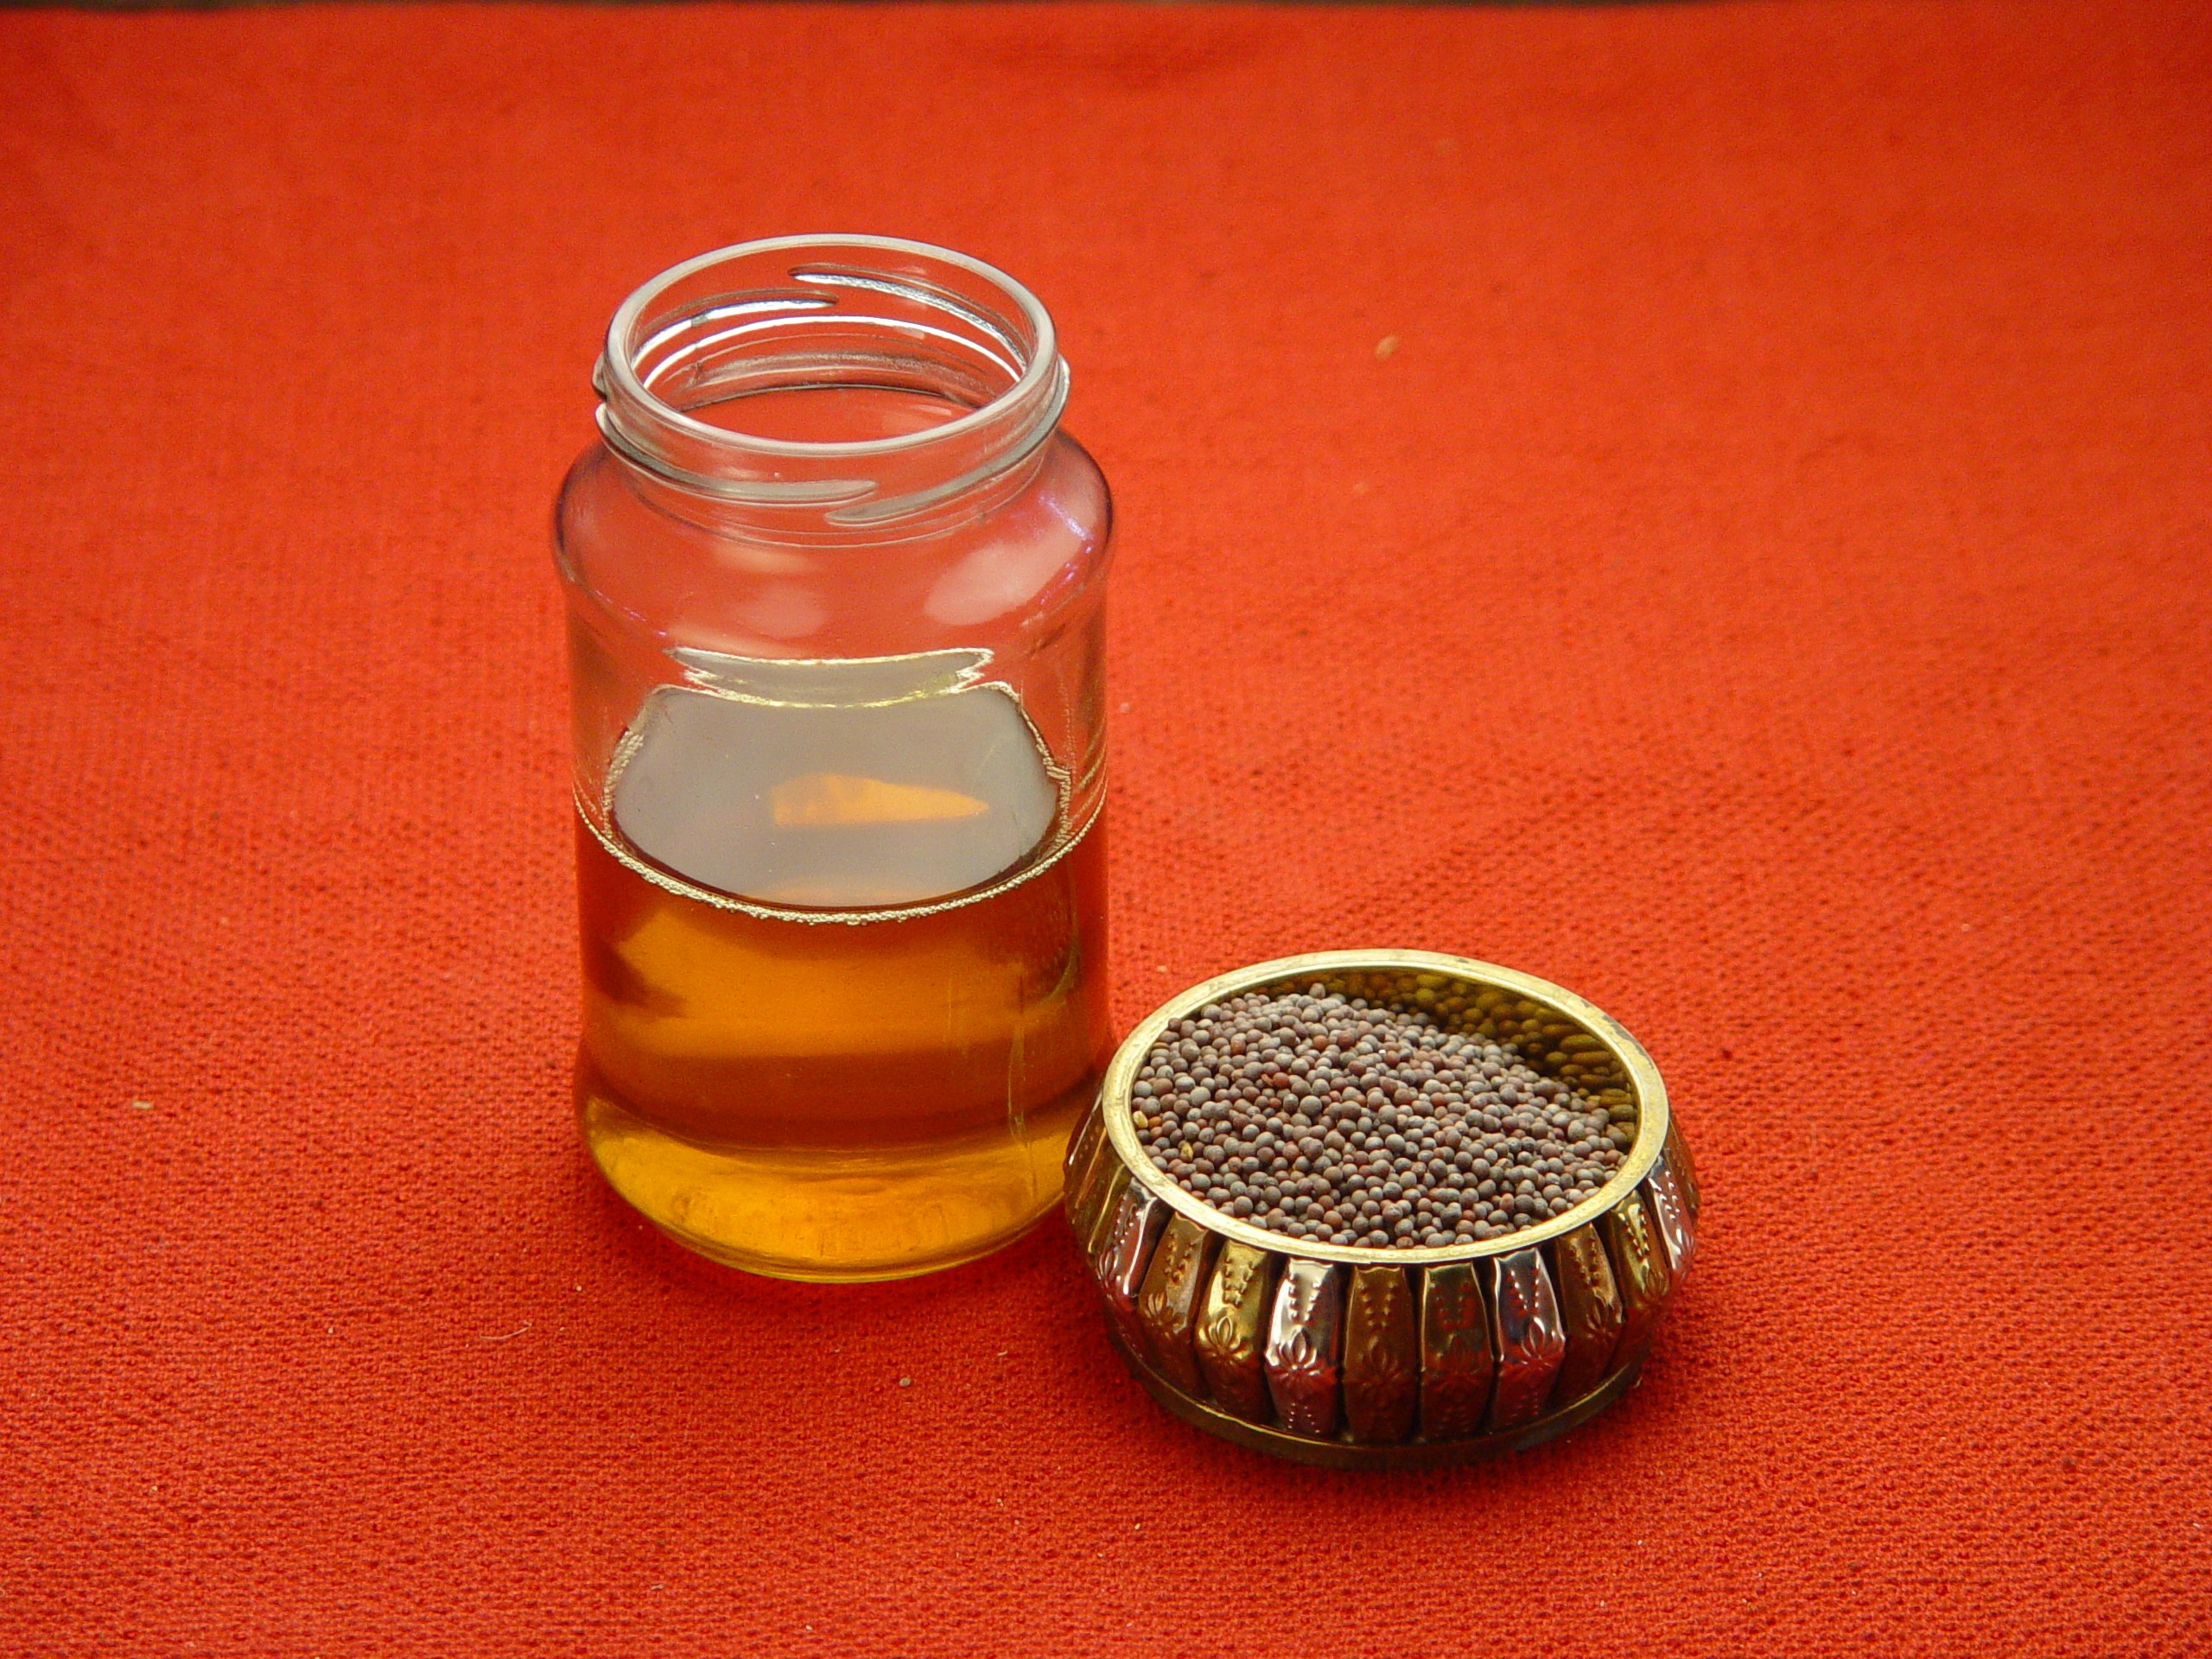 Mustard oil advantages and disadvantages